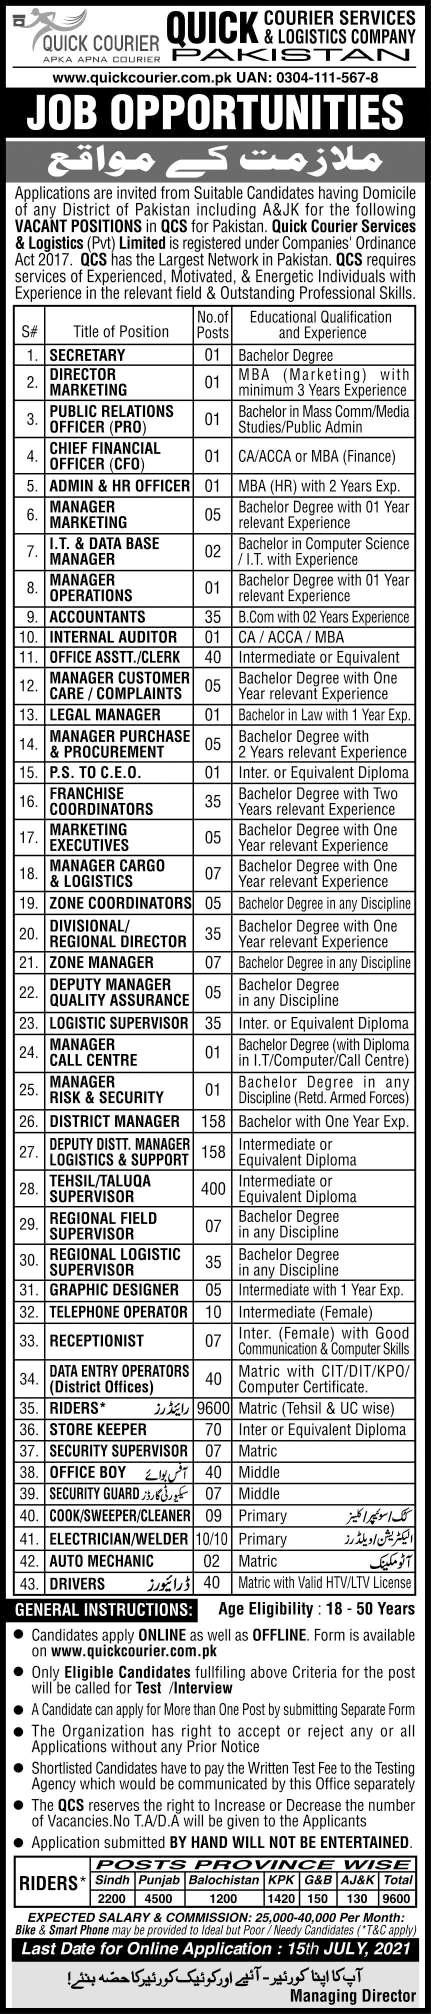 Quick Courier & Delivery Service Announced 11000+ Jobs on different post like Director, Managers, Riders, Many More in June 2021 | Apply Online